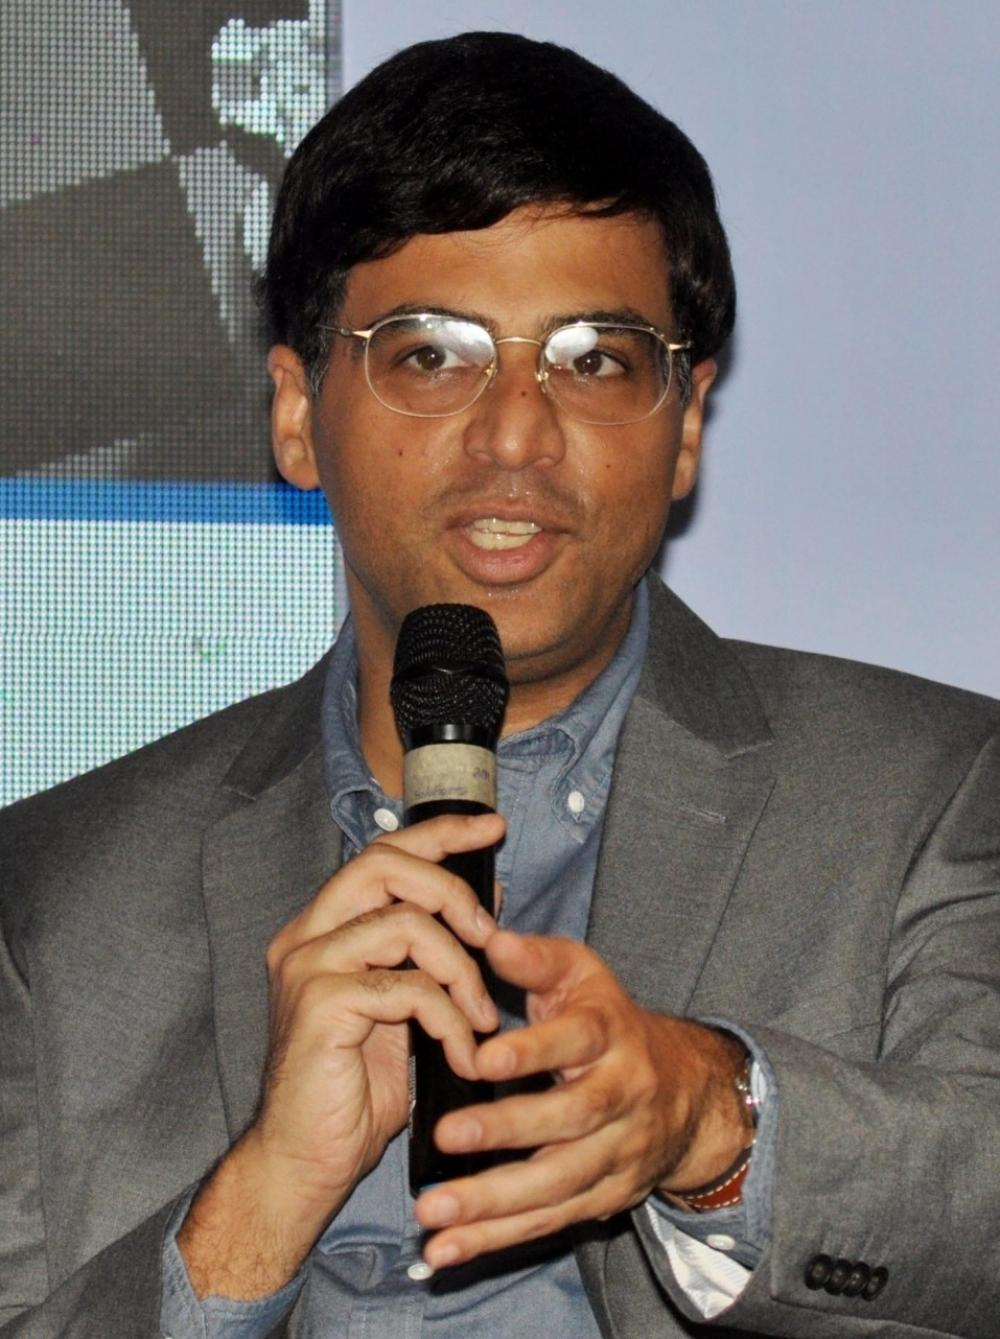 The Weekend Leader - Anand replaces Vidit as captain of Indian chess Olympiad team